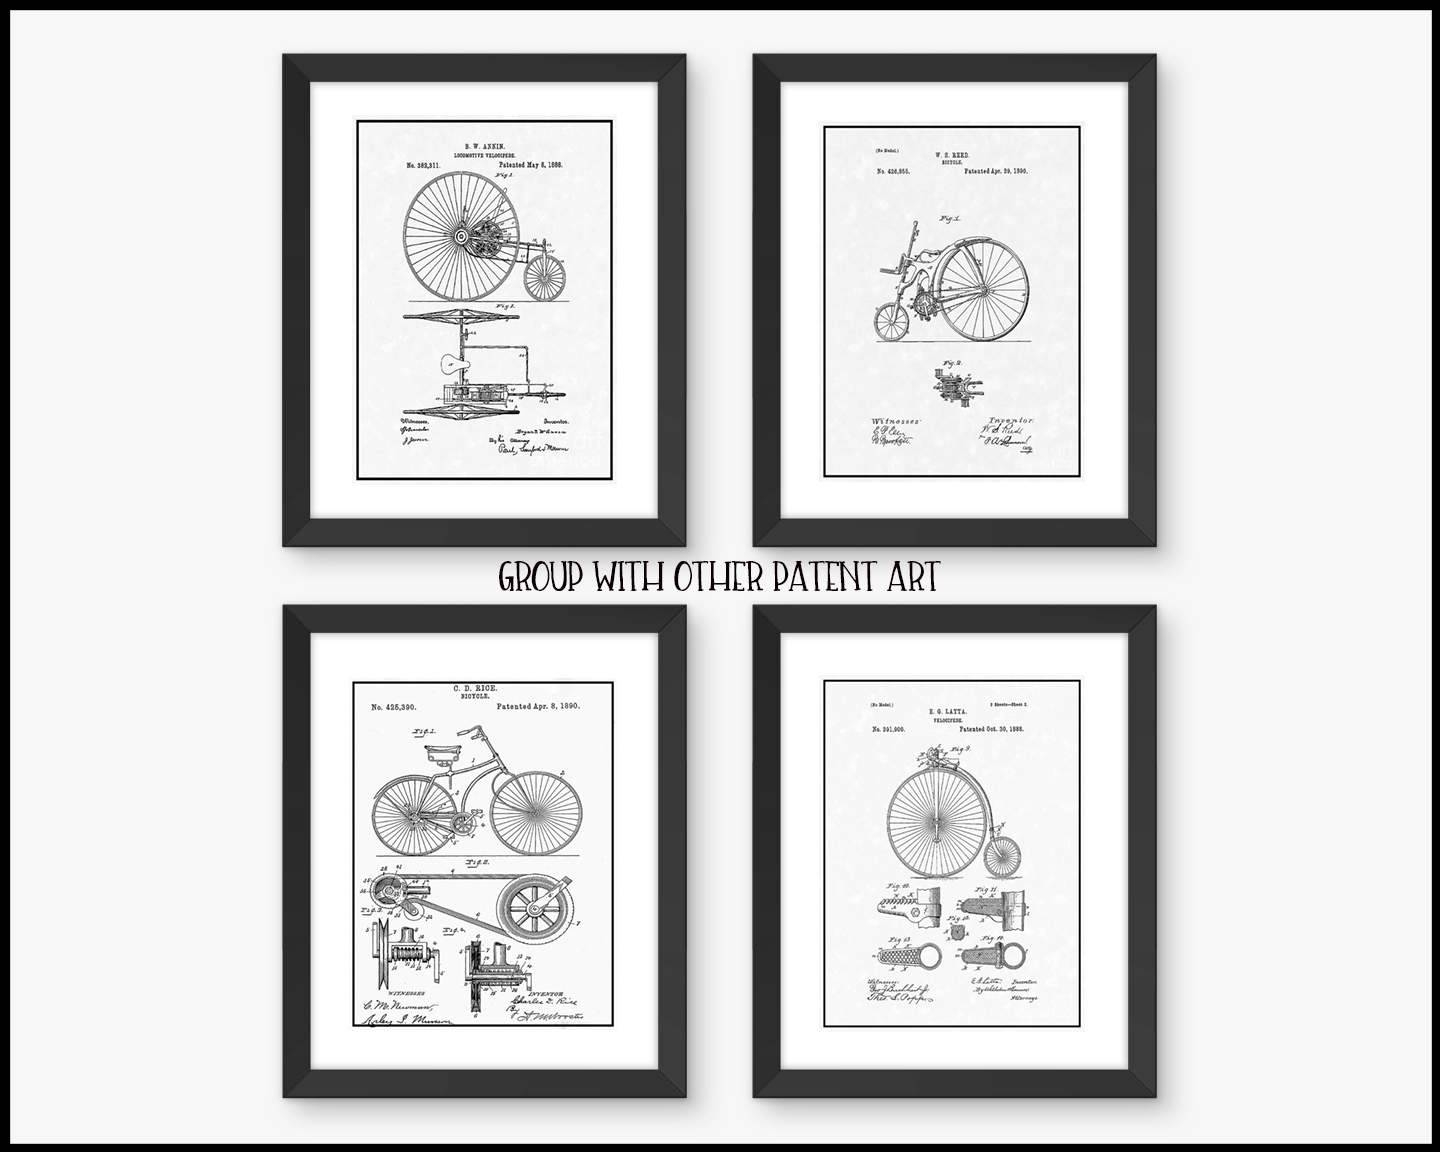 Framed Wall Art – Vintage Bicycle Patent  Free Shipping – Wall Art With Regard To 2017 Black And White Wall Art Sets (View 8 of 20)